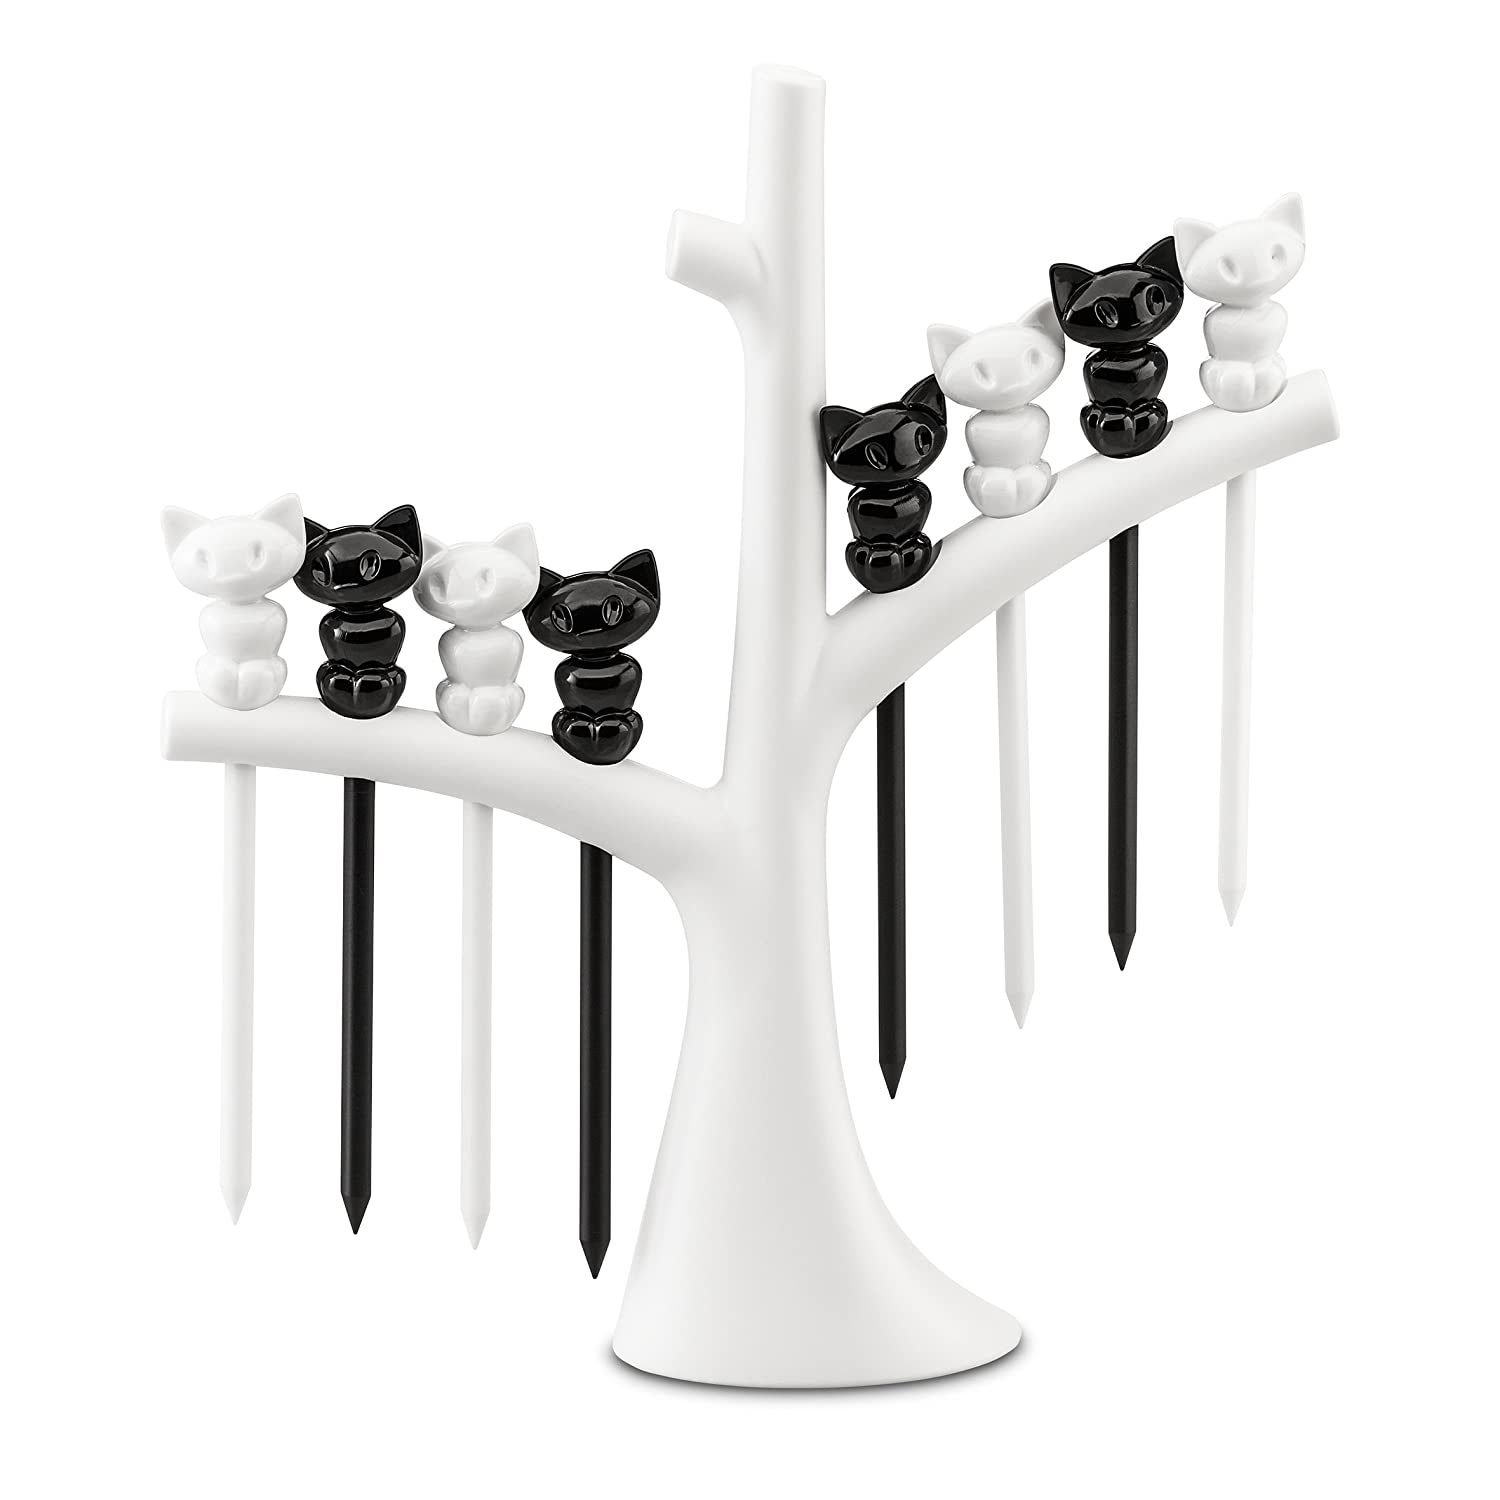 Koziol hors d'oeuvres forks with tree Miaou, thermoplastic, white with black, 4 x 17 x 19.2 cm 3134417